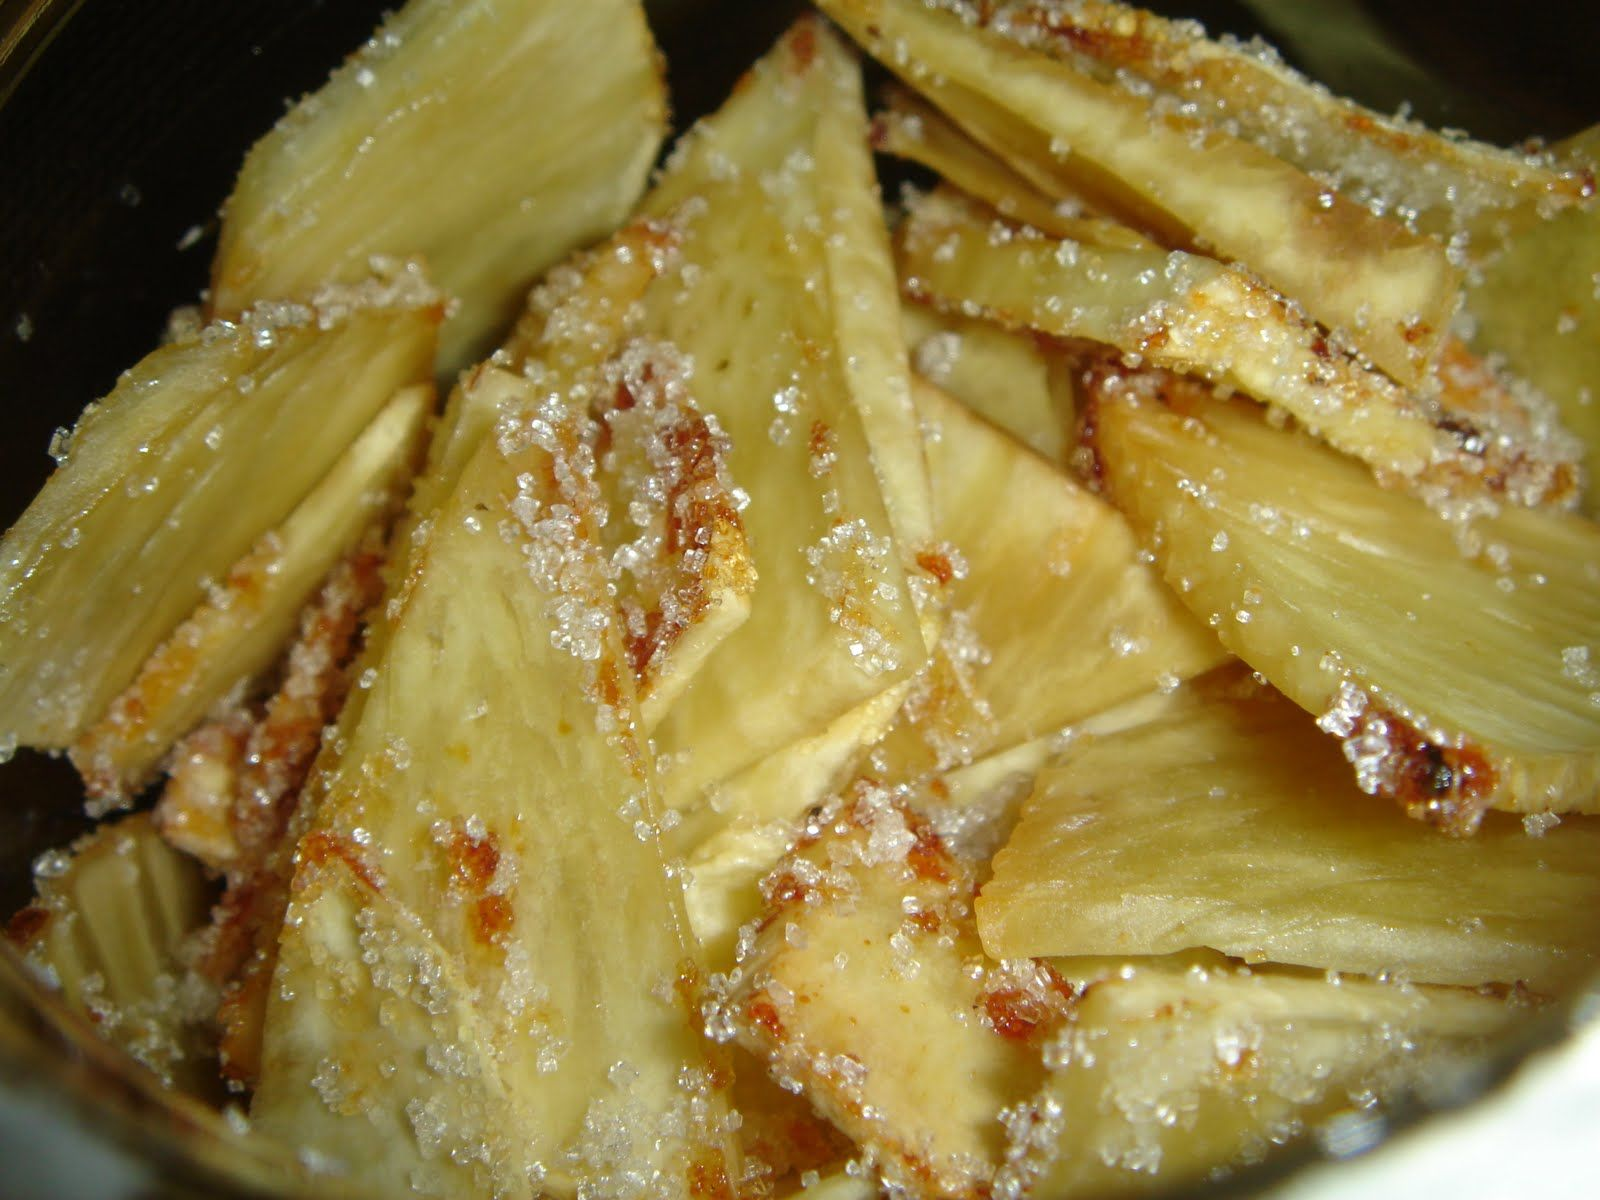 Fried breadfruit w/ sugar (With images) | Creole recipes ...